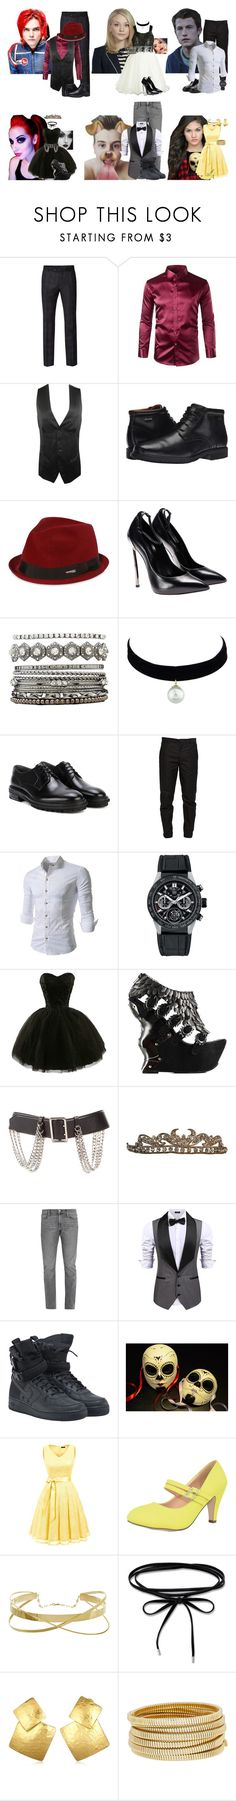 """""""LET'S PARTY LIKE IT'S MY CIVIL RIGHT/:/OUAD"""" by evil-queen3 ❤ liked on Polyvore featuring Ben Sherman, Yohji Yamamoto, Rockport, Dsquared2, Charlotte Russe, Lanvin, Maison Margiela, TAG Heuer, Burberry and Frame"""